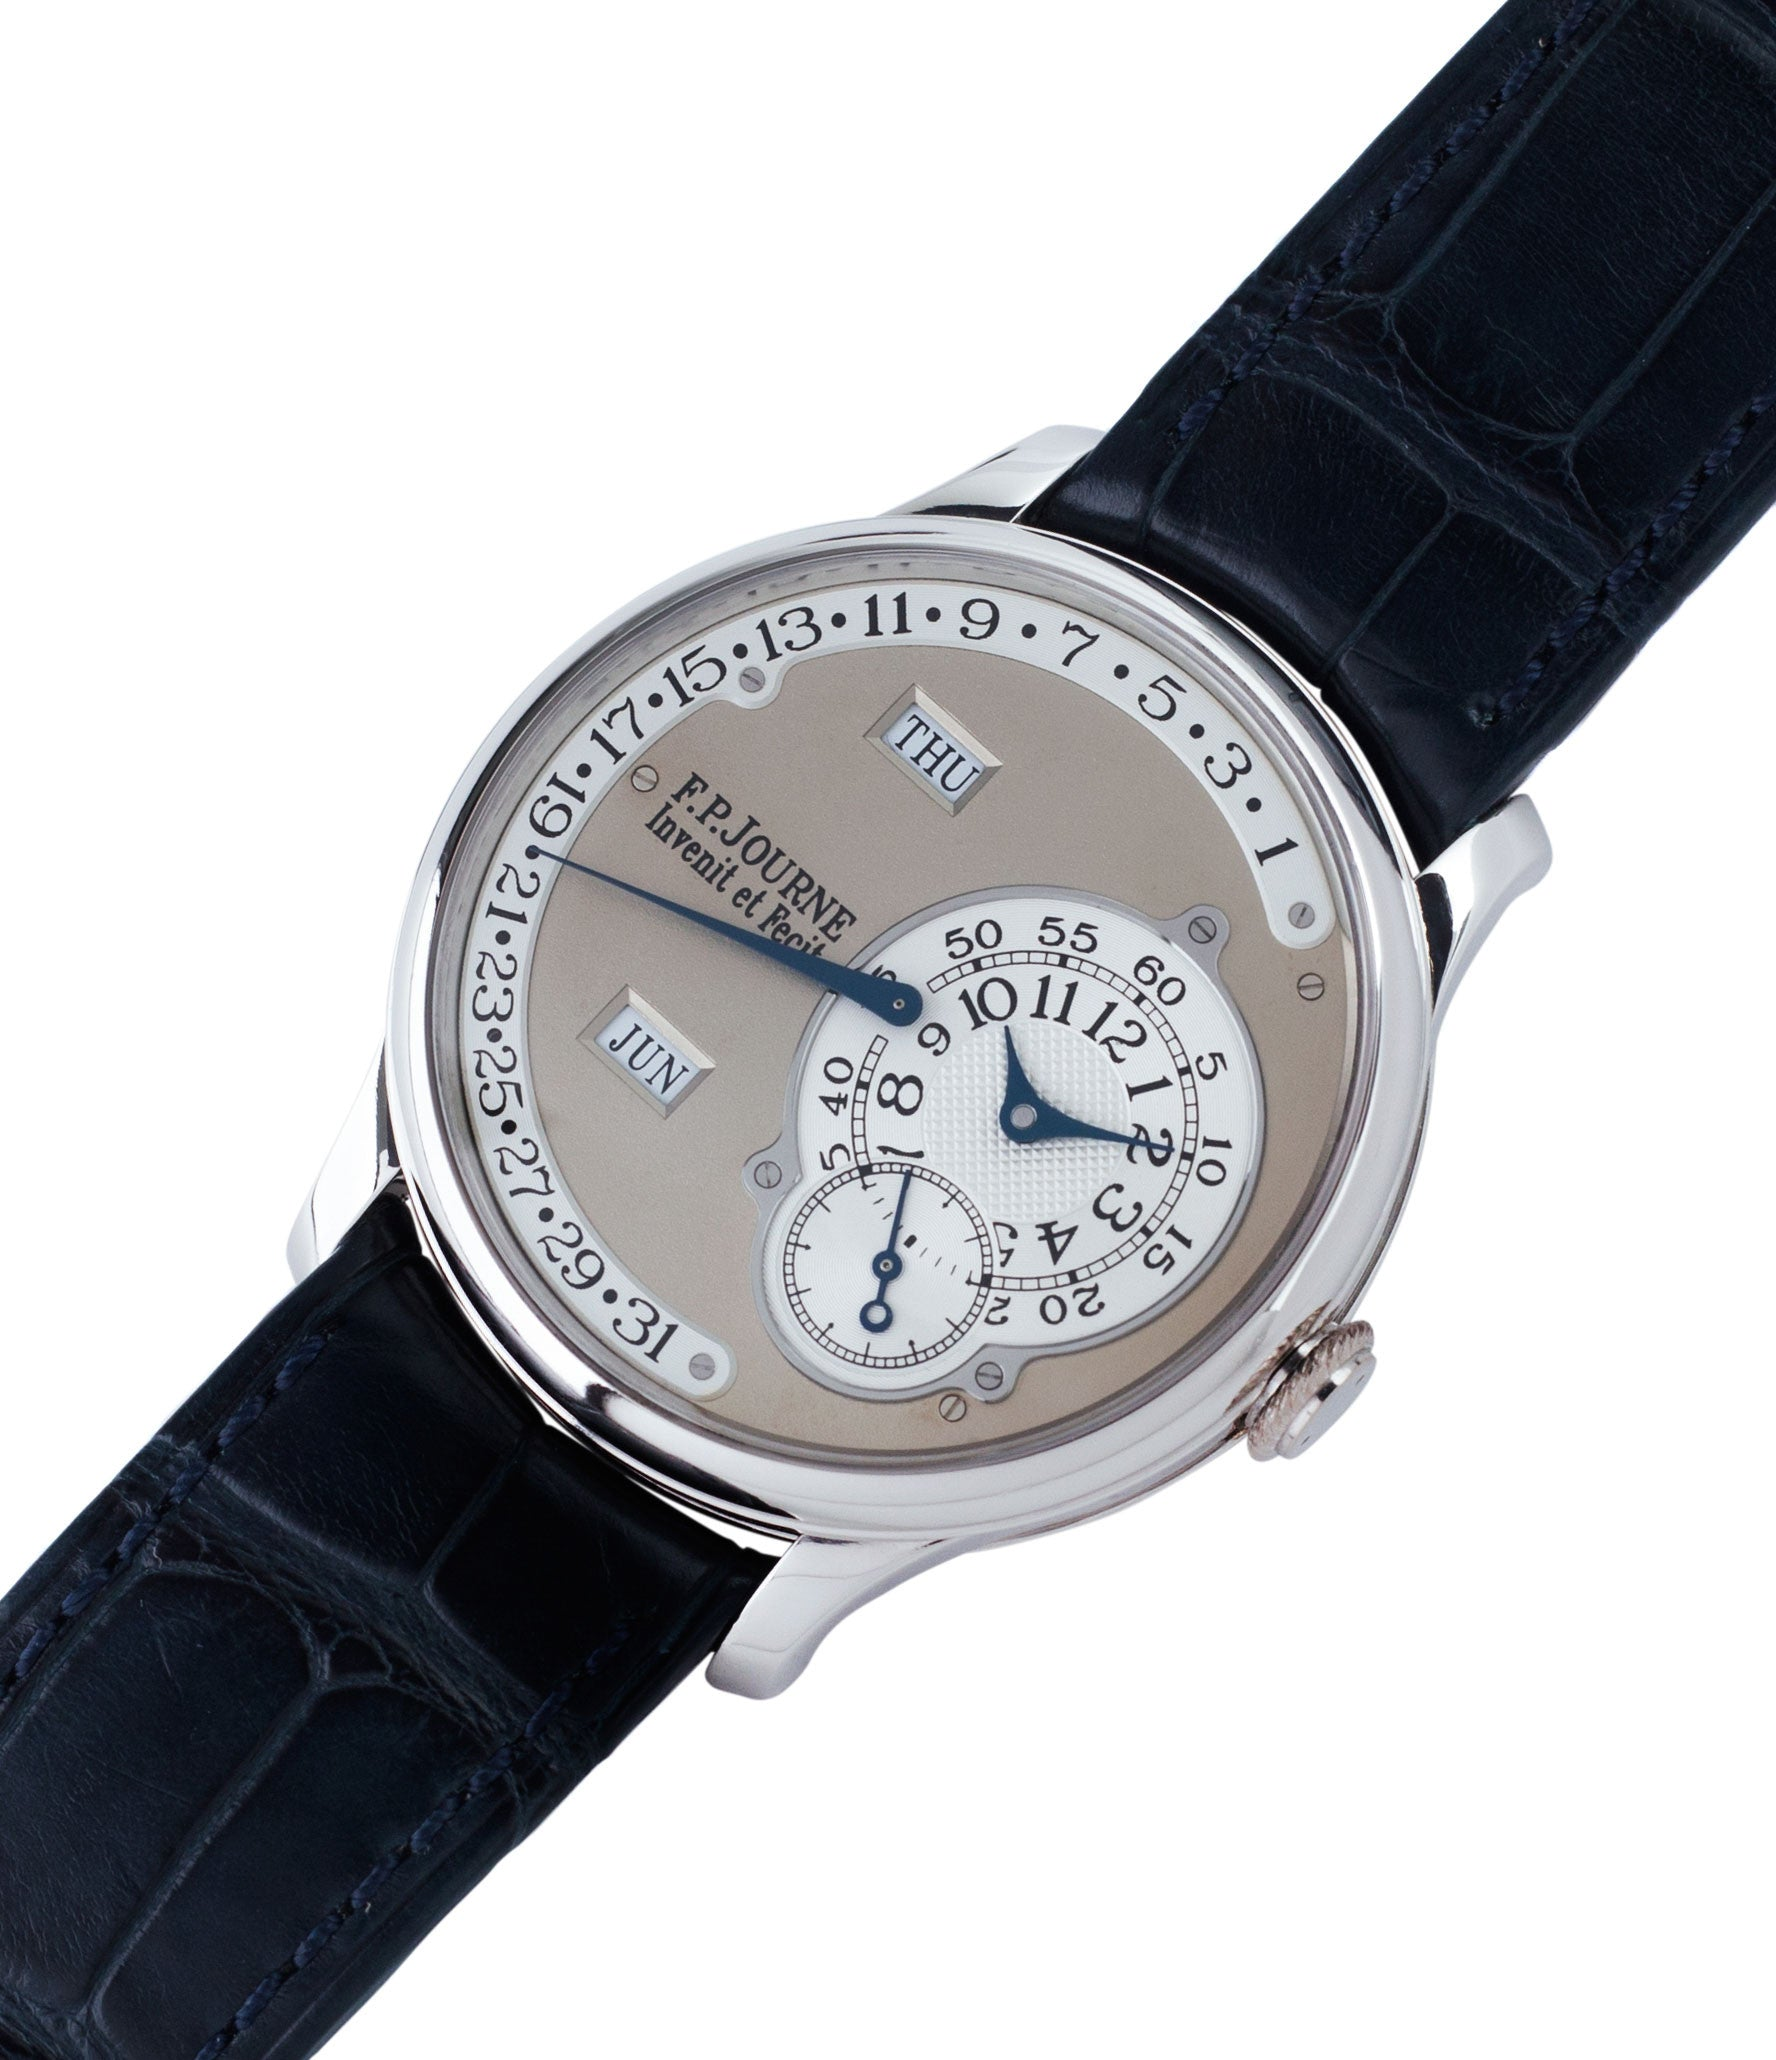 buy preowned F. P. Journe Octa Calendrier early brass movement 38mm platinum full set dress luxury watch for sale online at A Collected Man London independent watch specialist